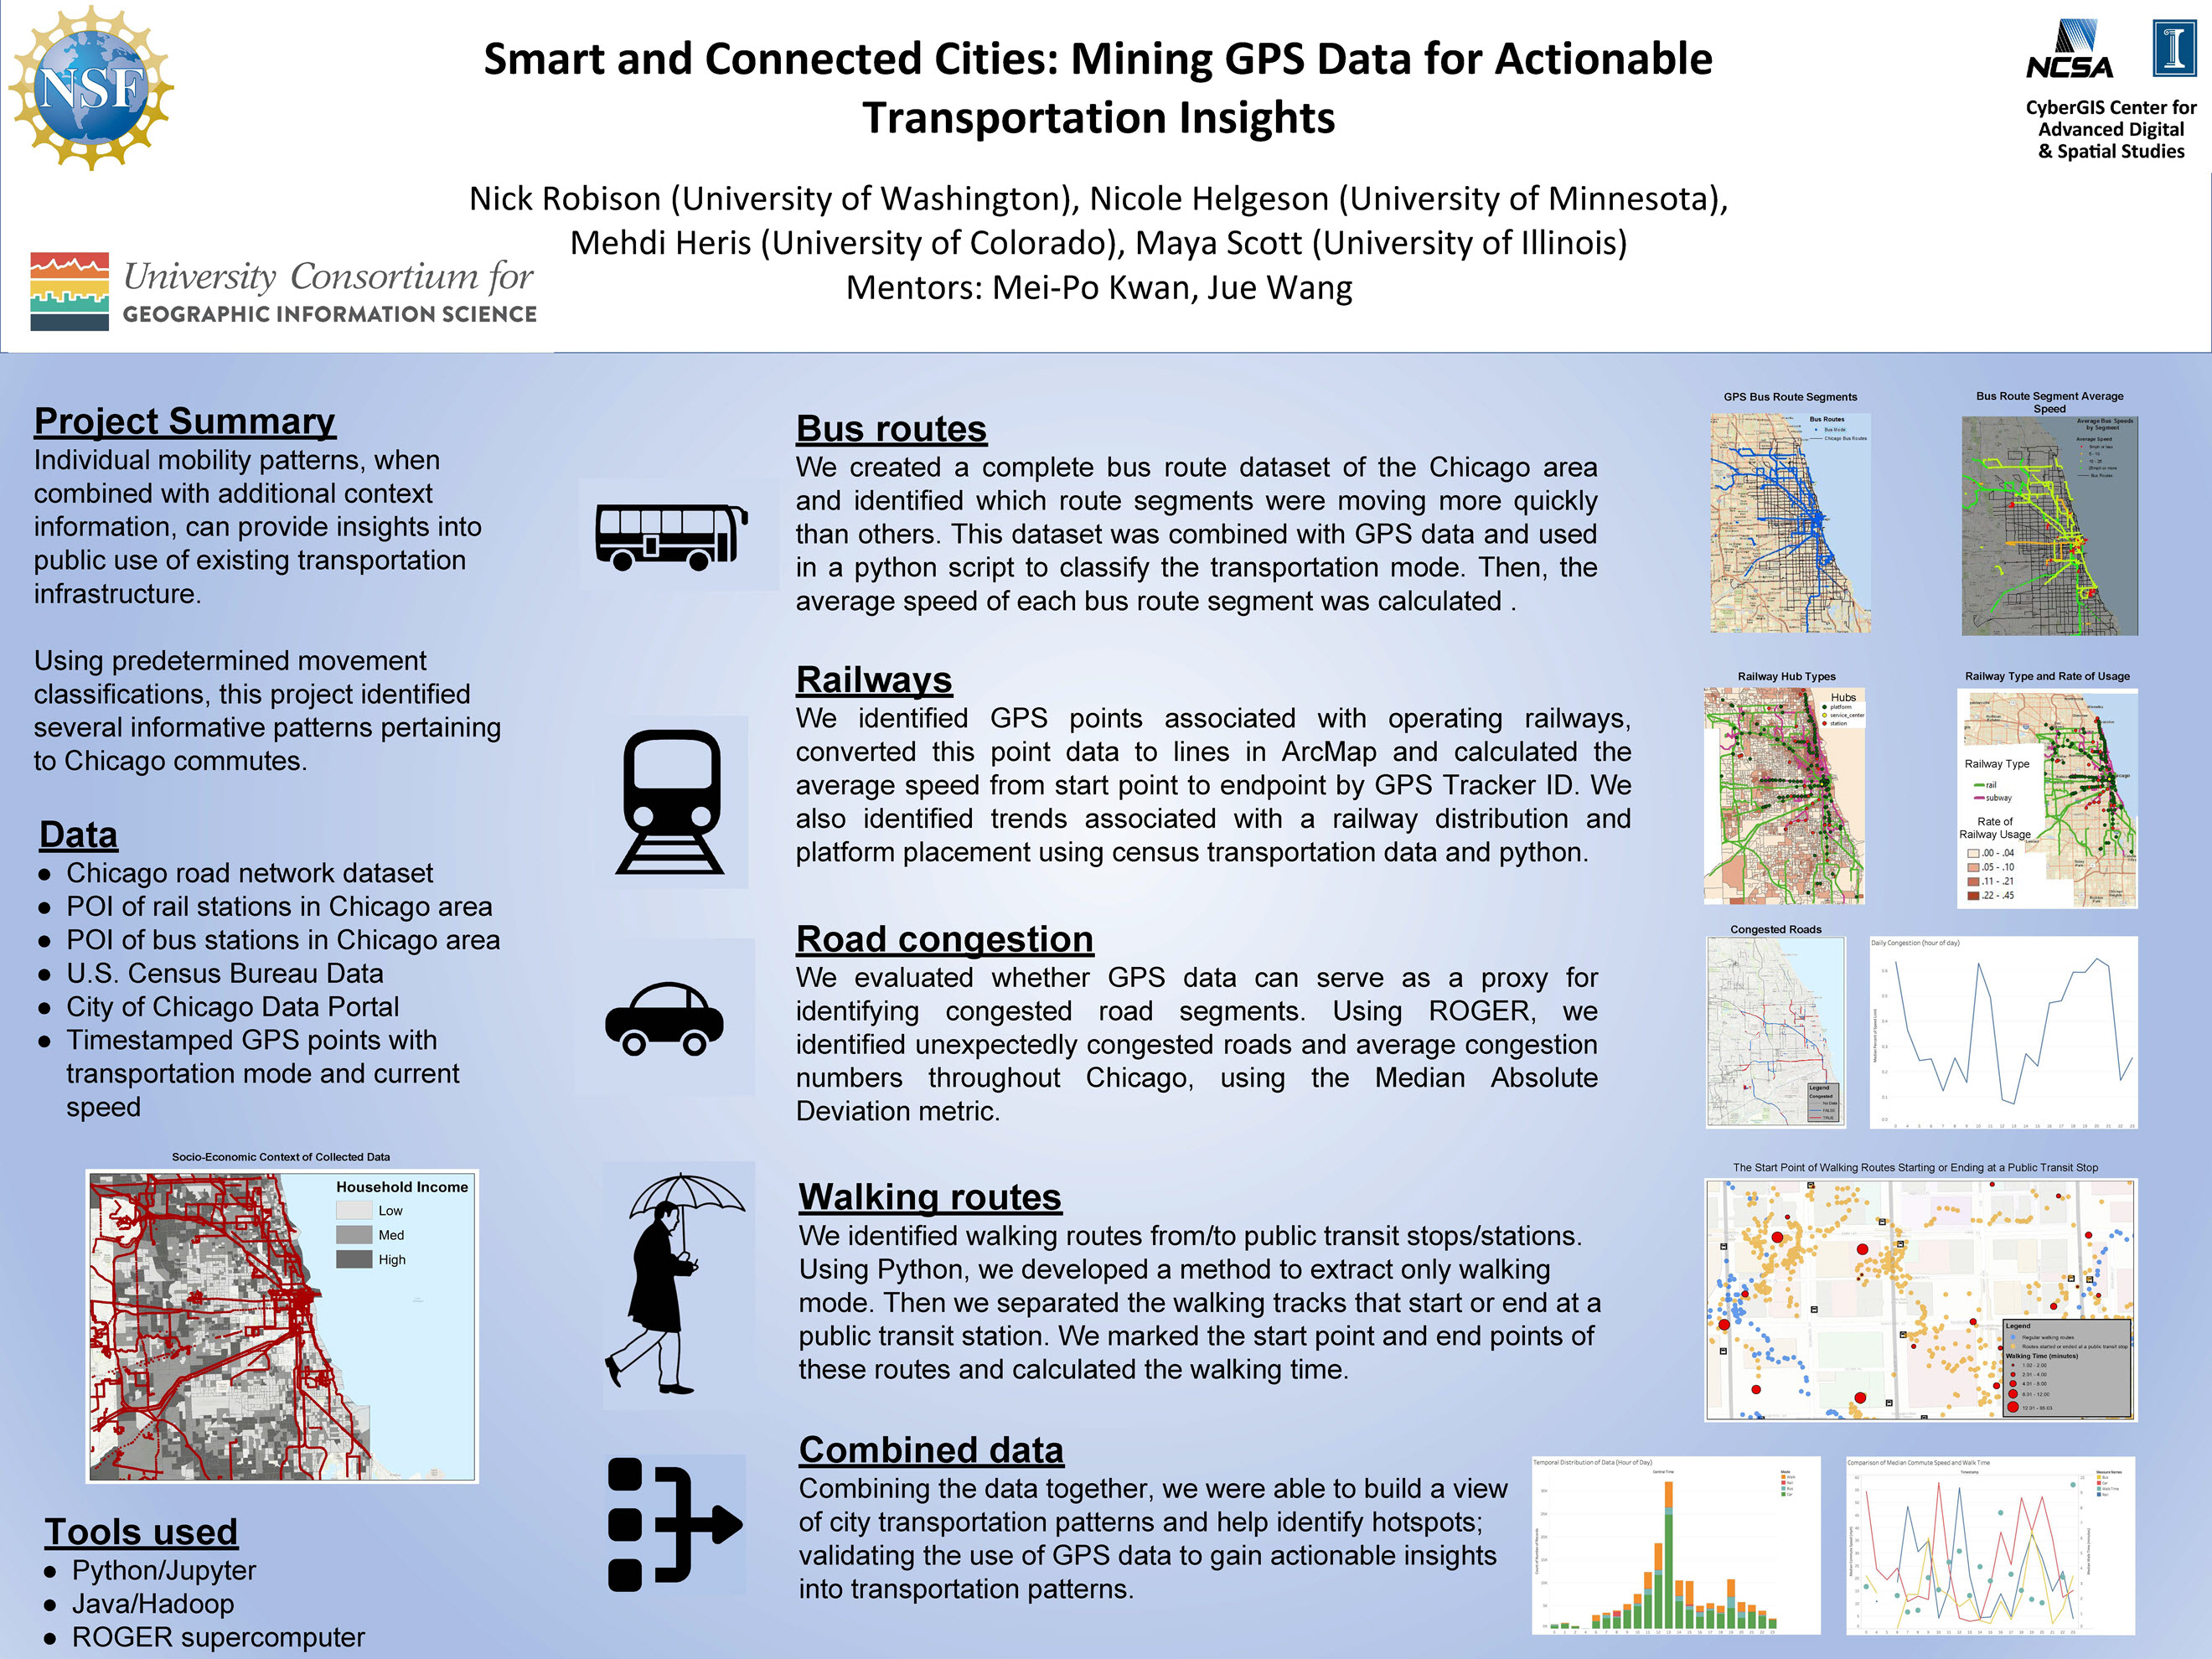 Smart and Connected Cities: Mining GPS Data for Actionable Transportation Insights